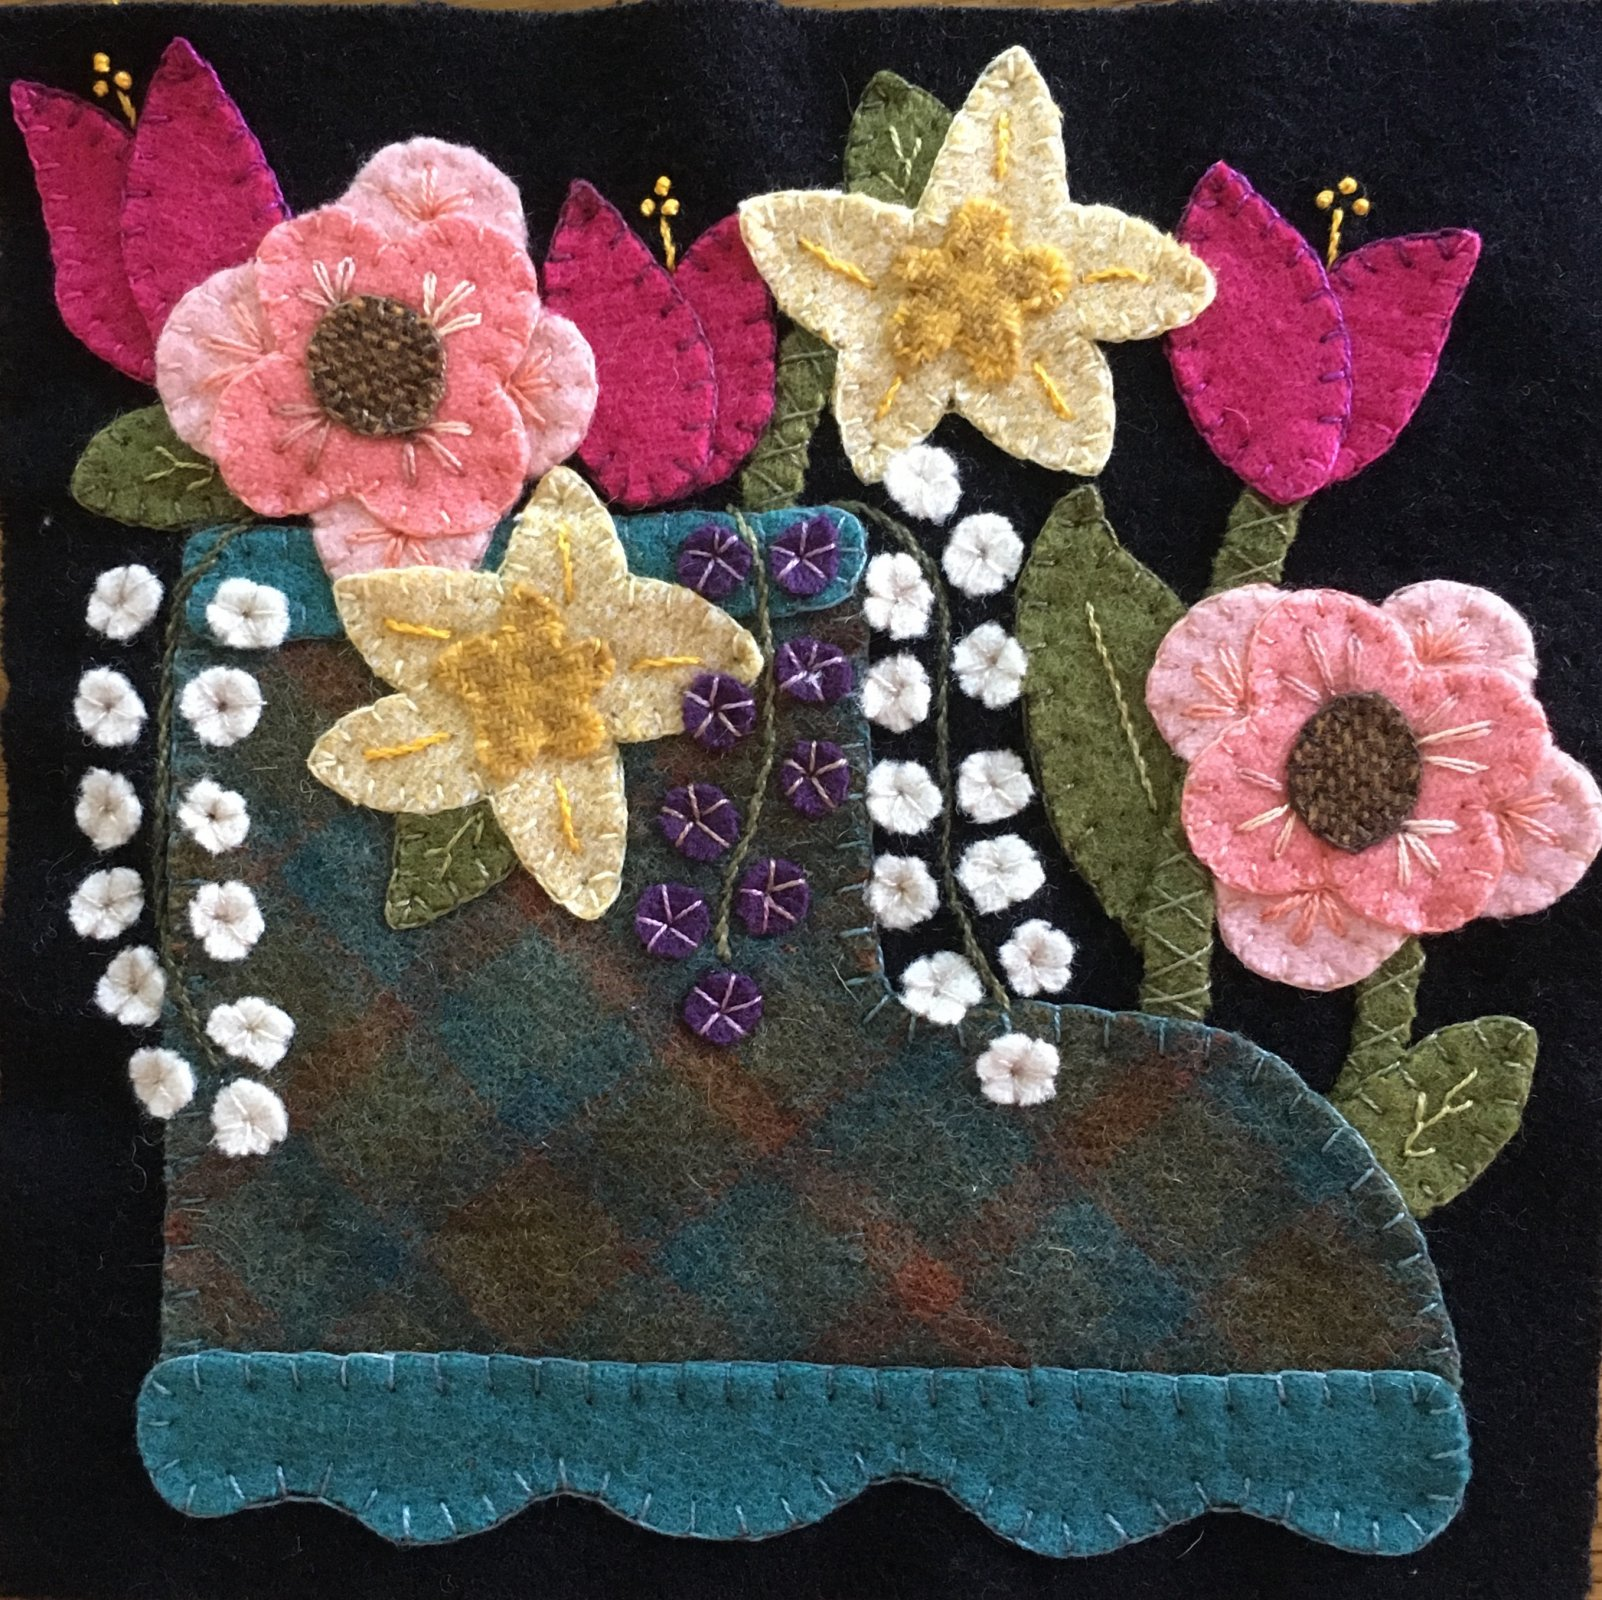 Wooly Block Adventure 2018 Rainy Day Bouquet